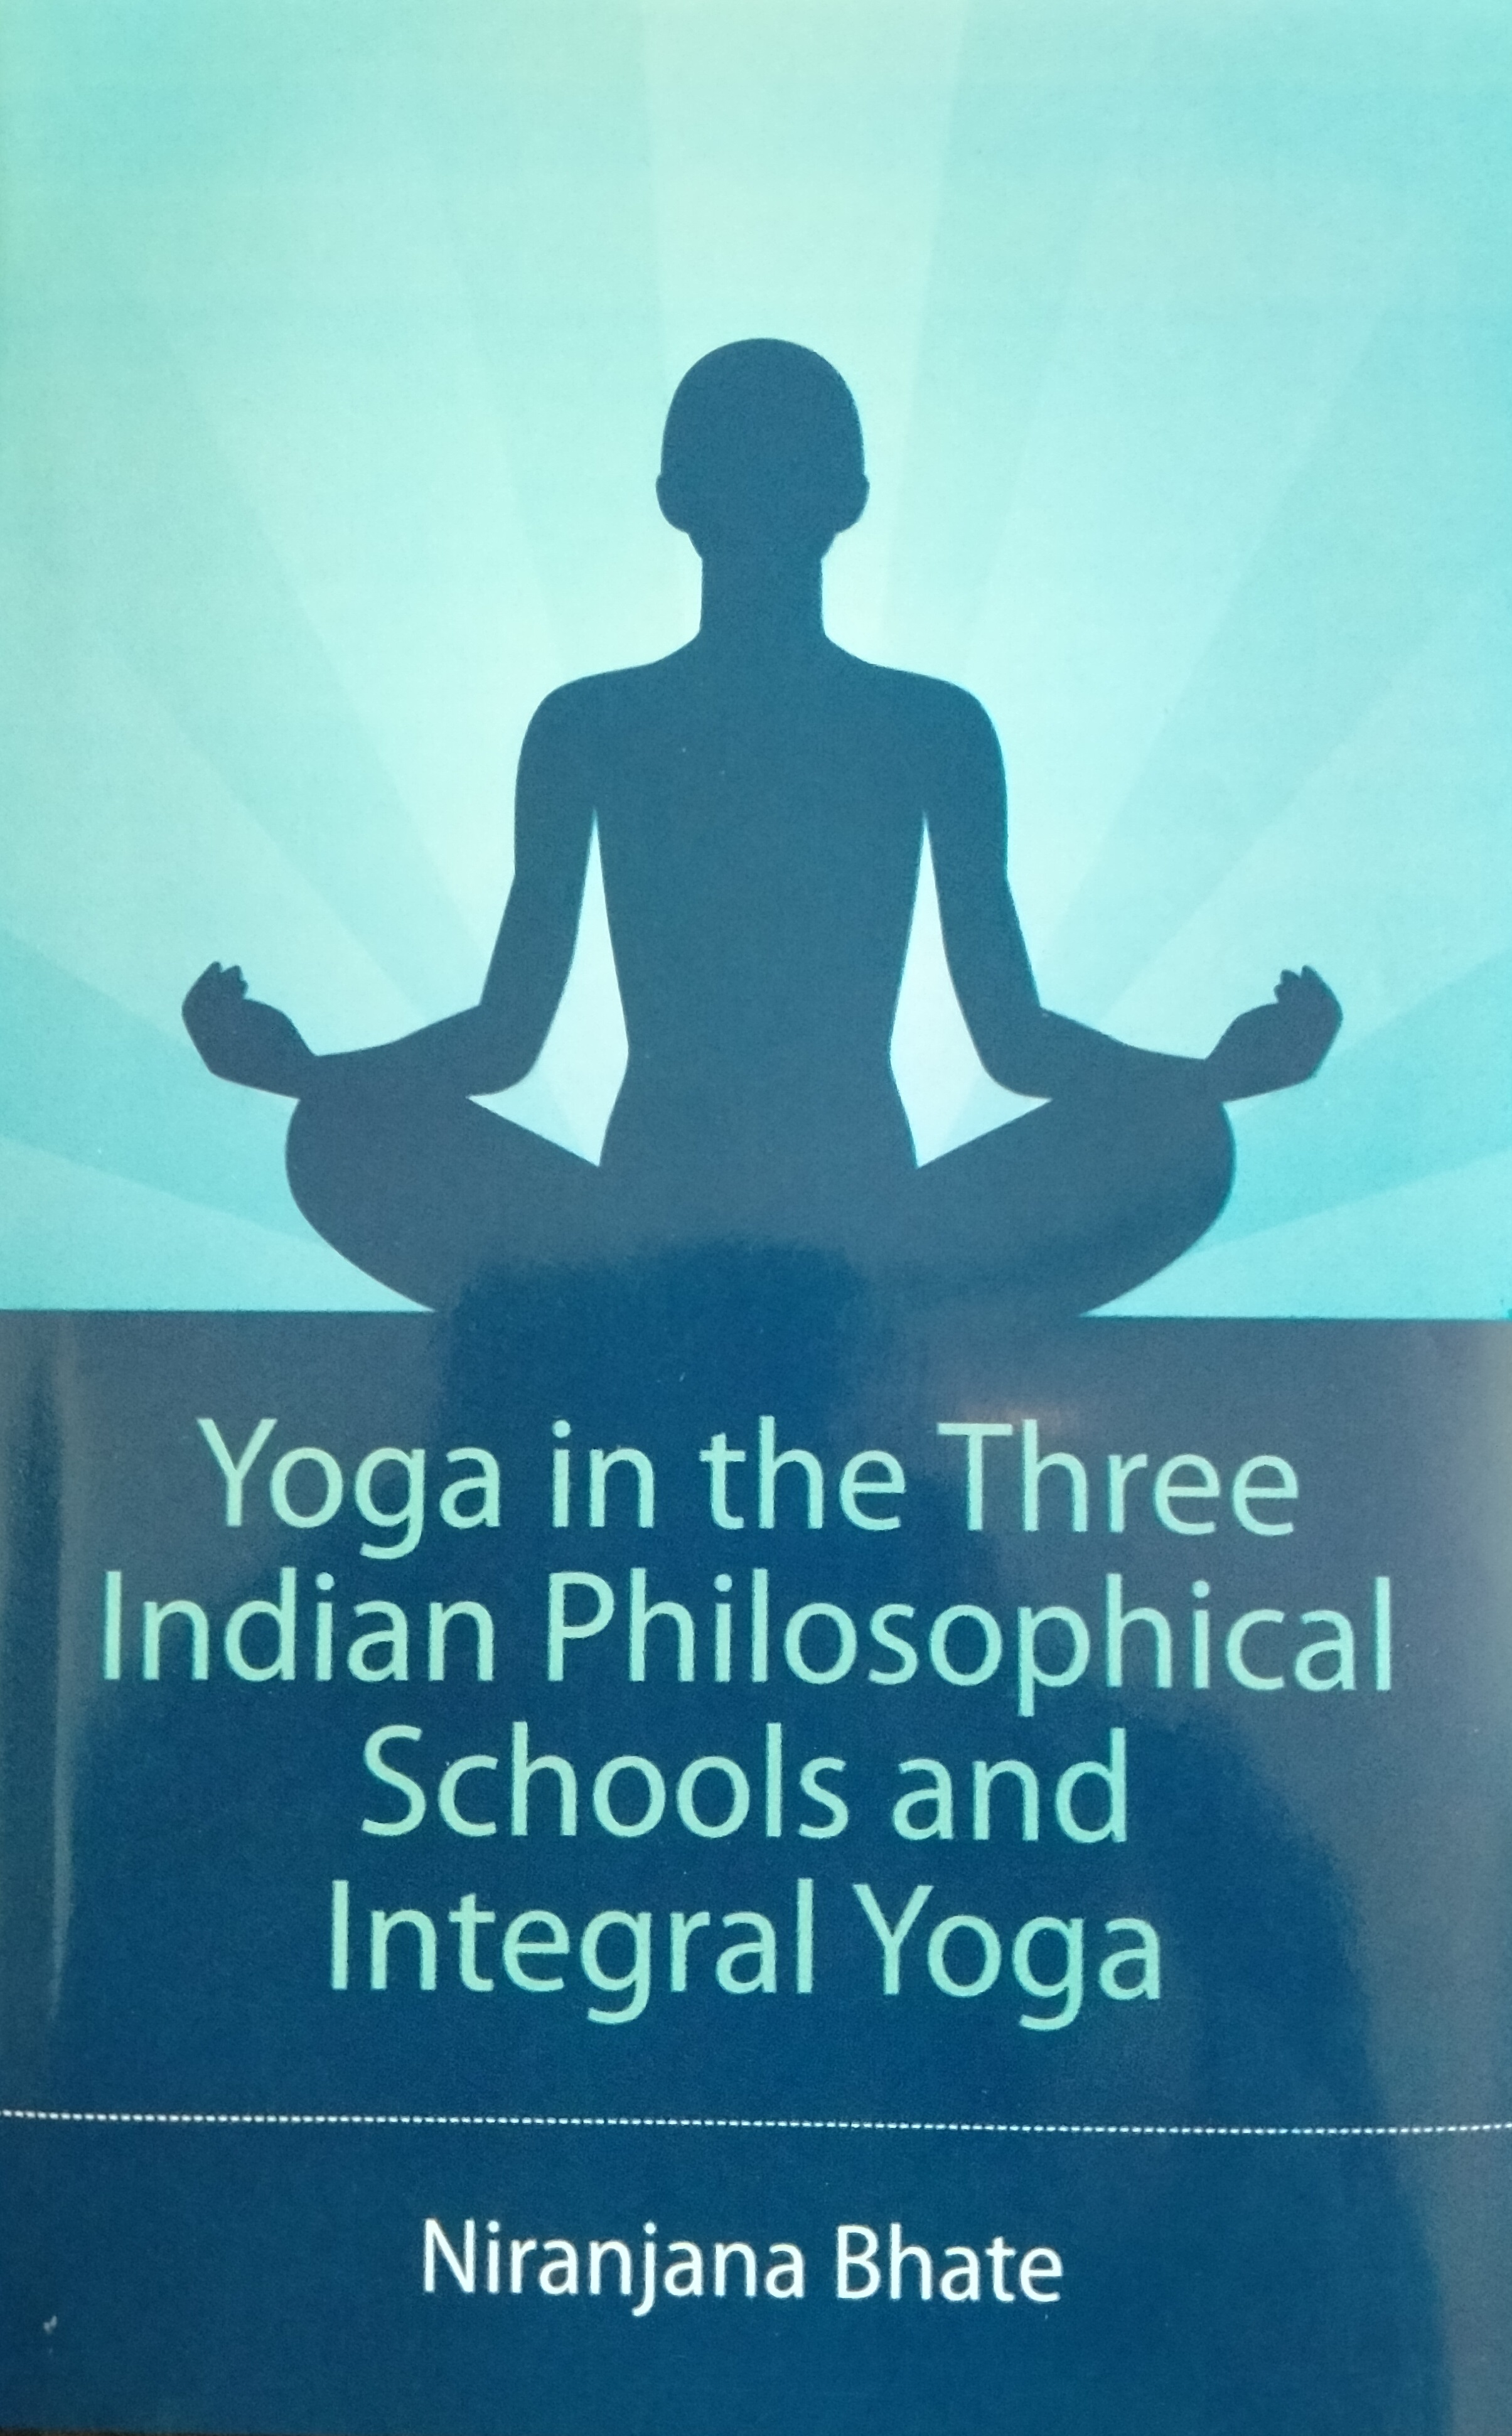 Yoga in the Three Indian Philosophical Schools and Integral Yoga